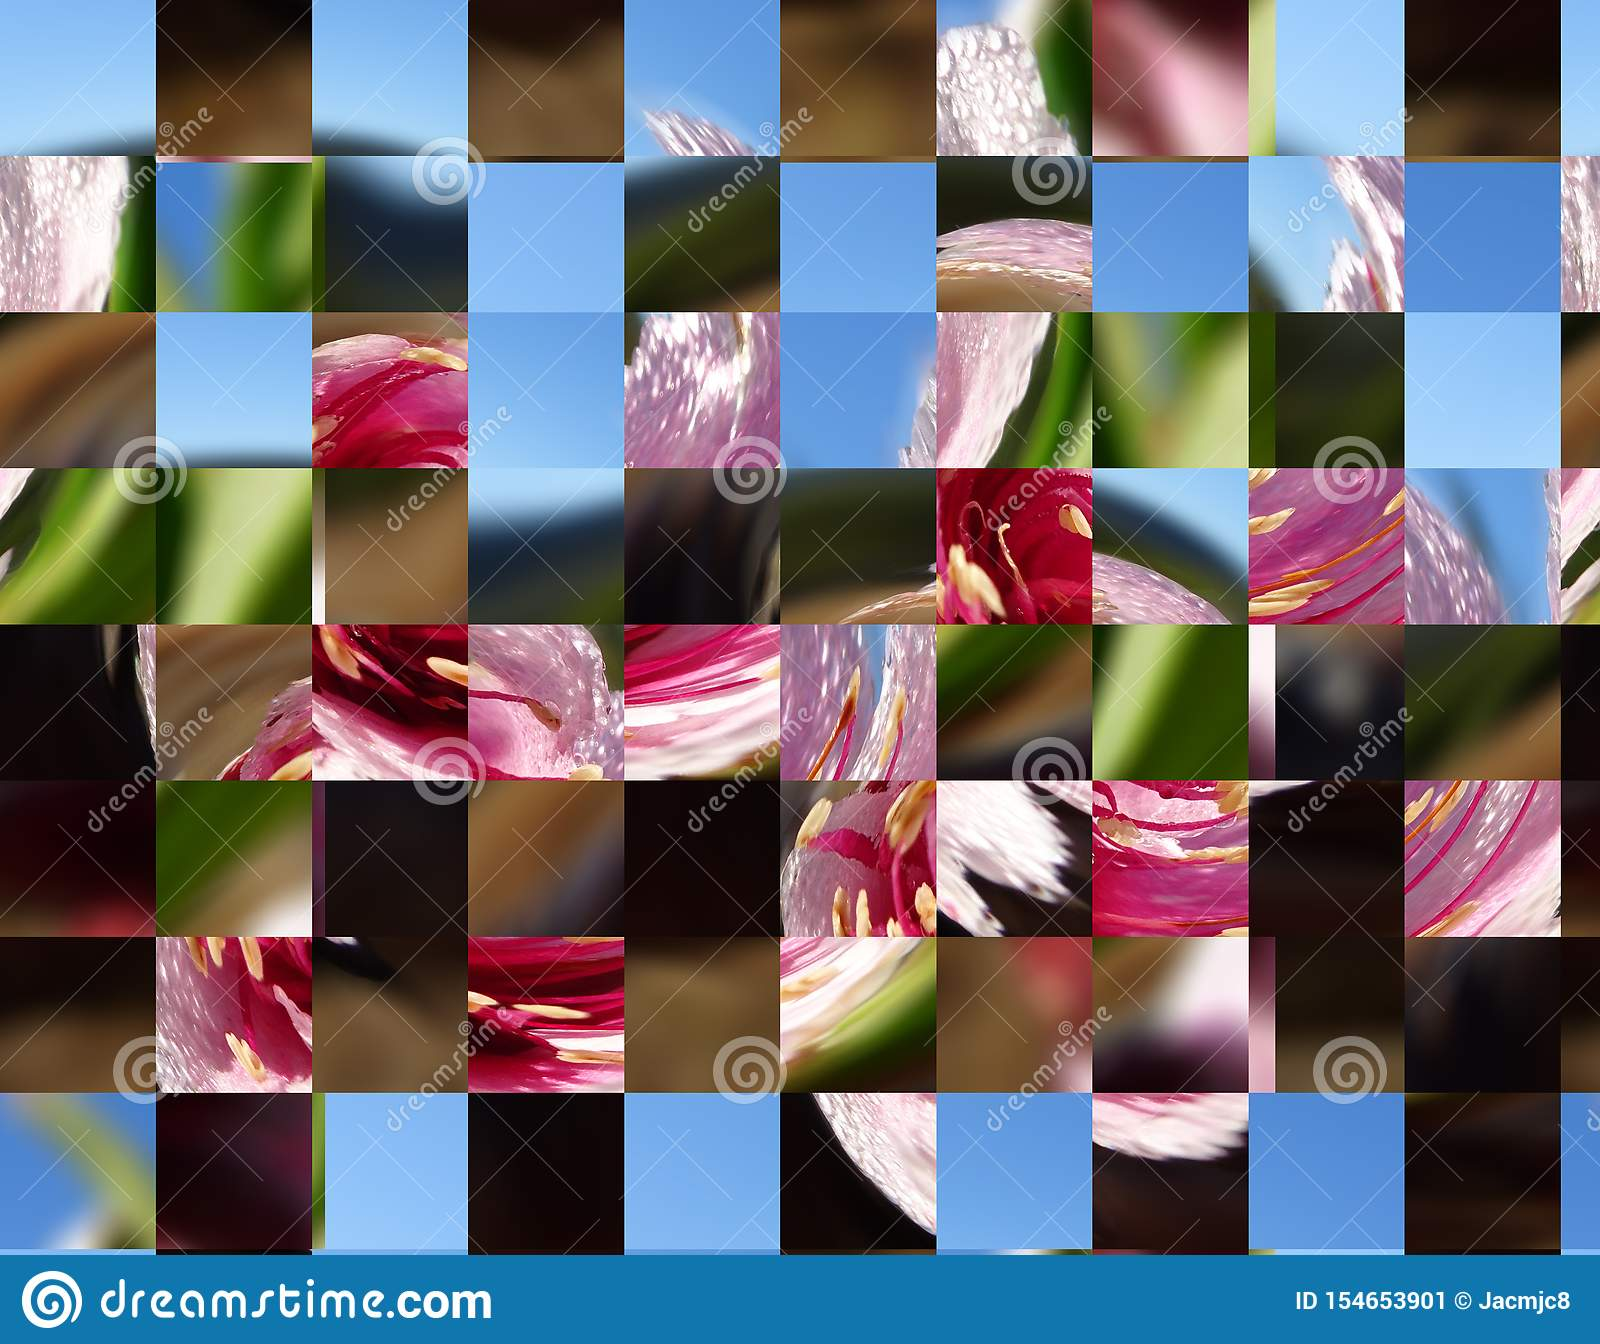 Abstract conceptual backdrop environment creative artistic new texture colours shapes details fun swirls twist from nature flowers